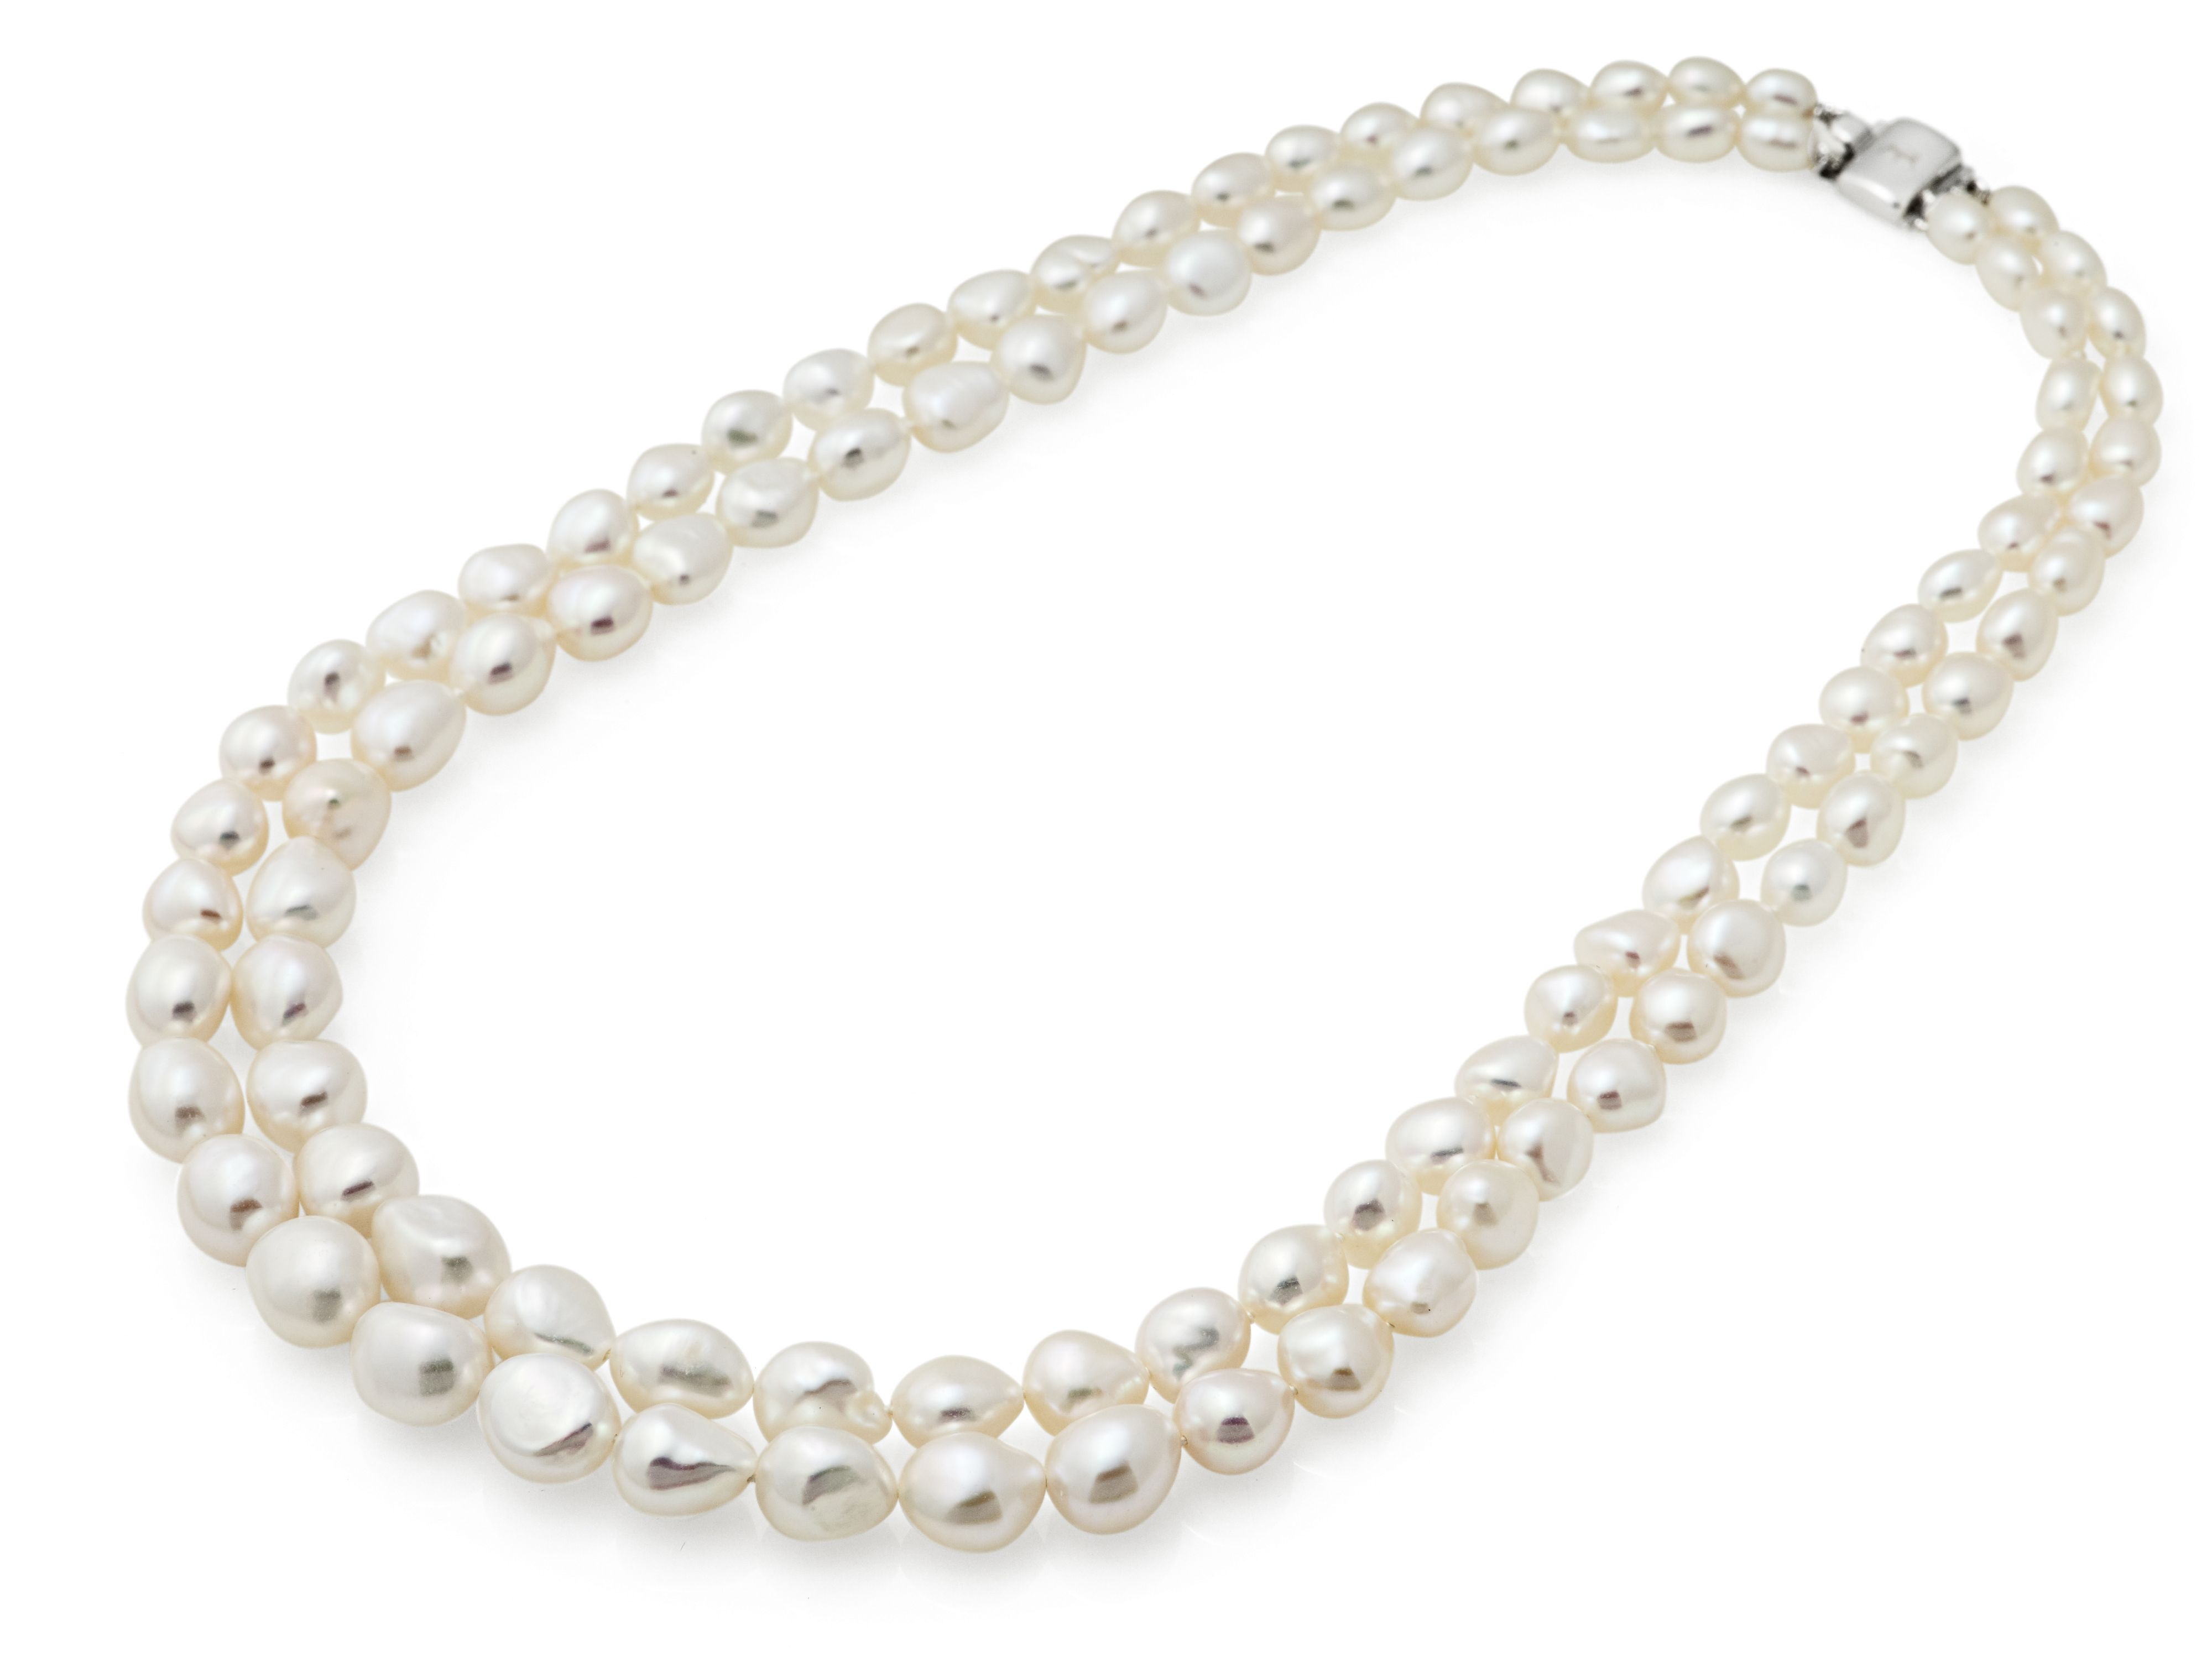 Jersey Pearl Jersey Pearl Freshwater Pearl Necklace, N/A